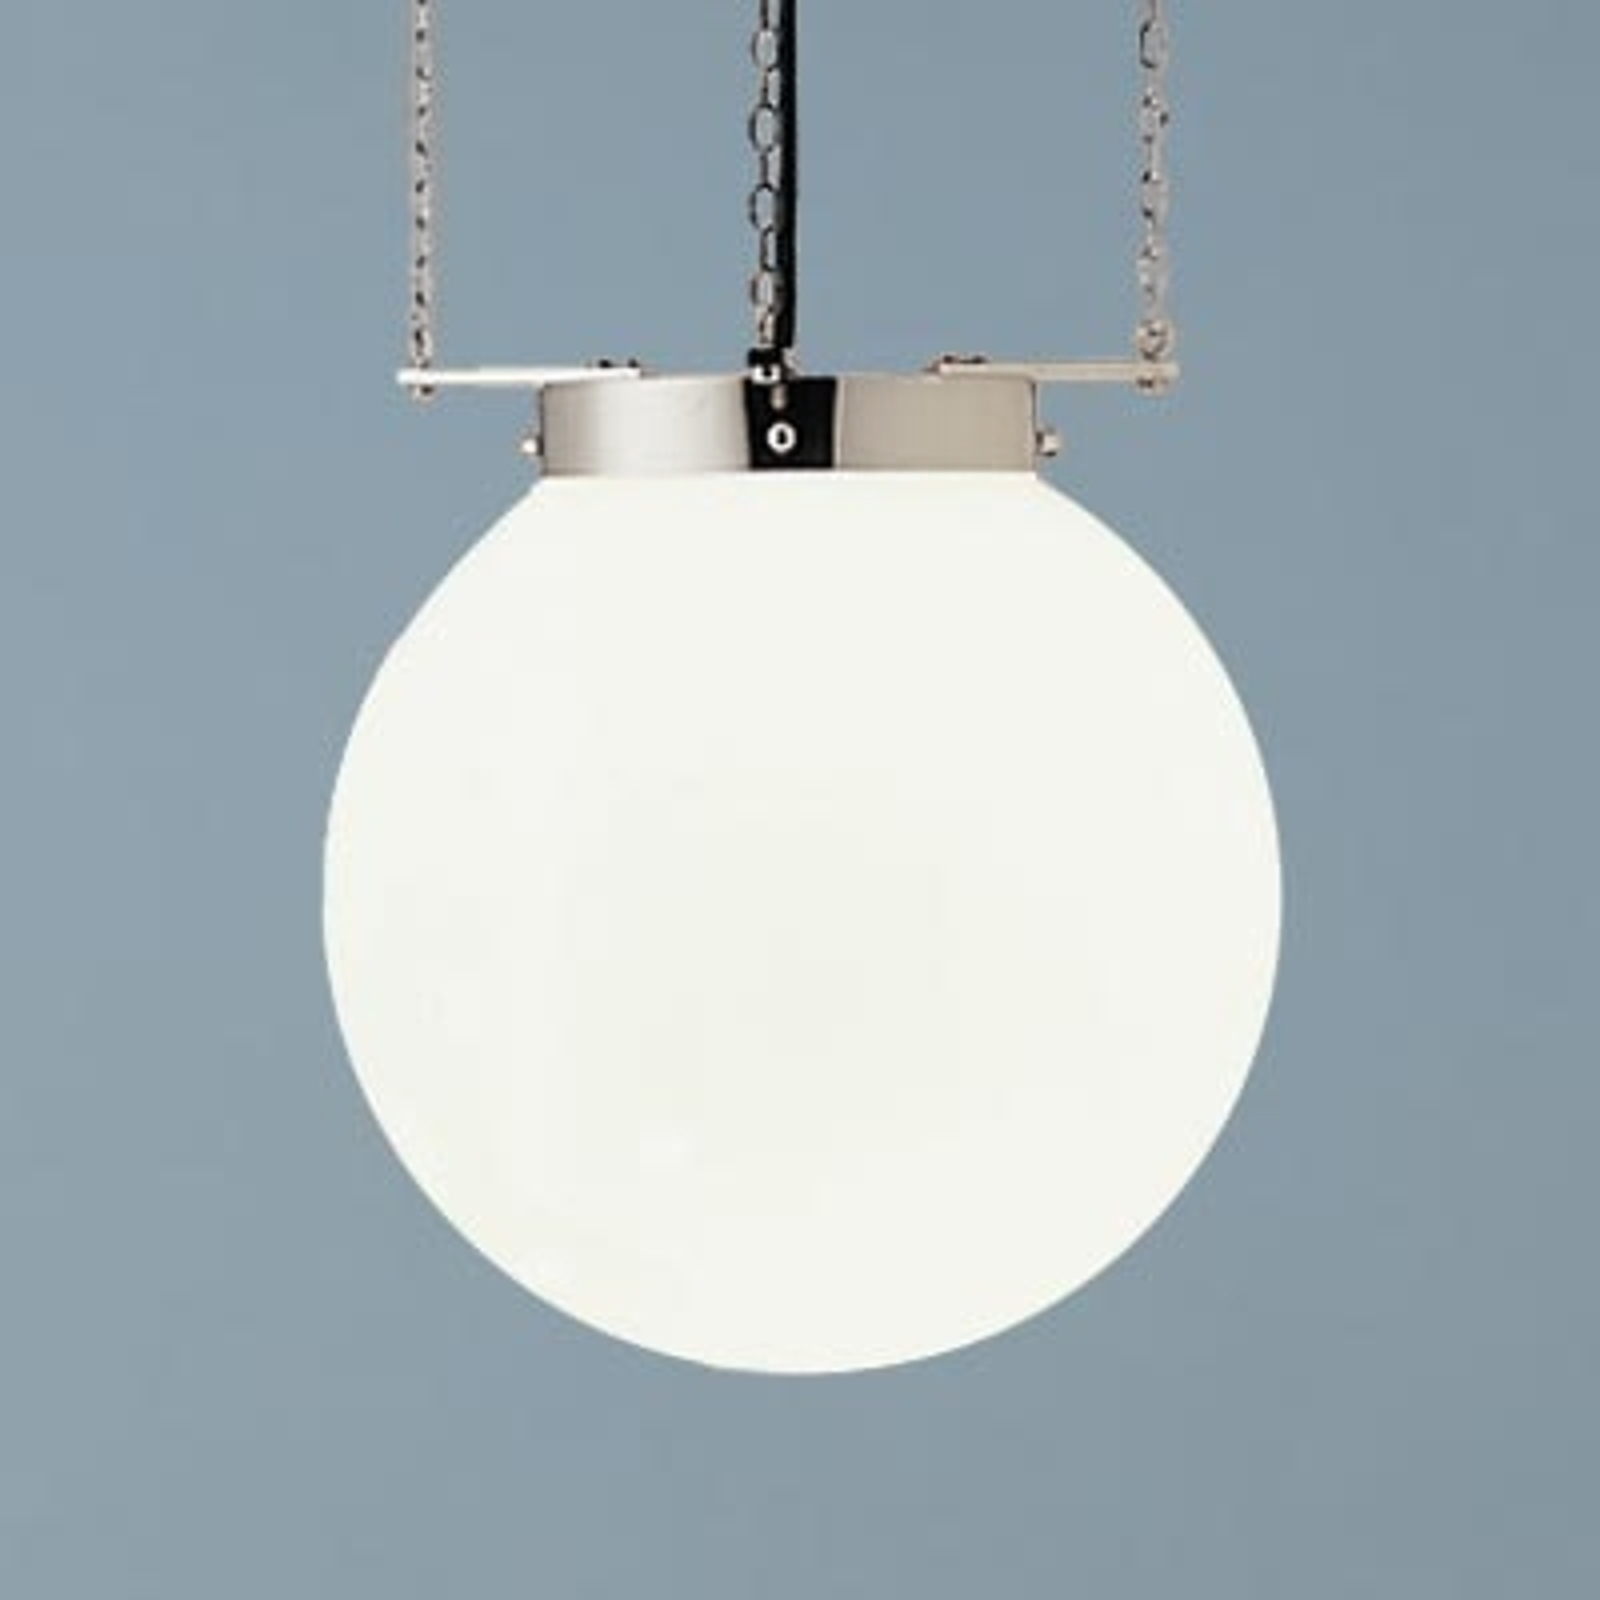 Suspension nickel style Bauhaus 25 cm